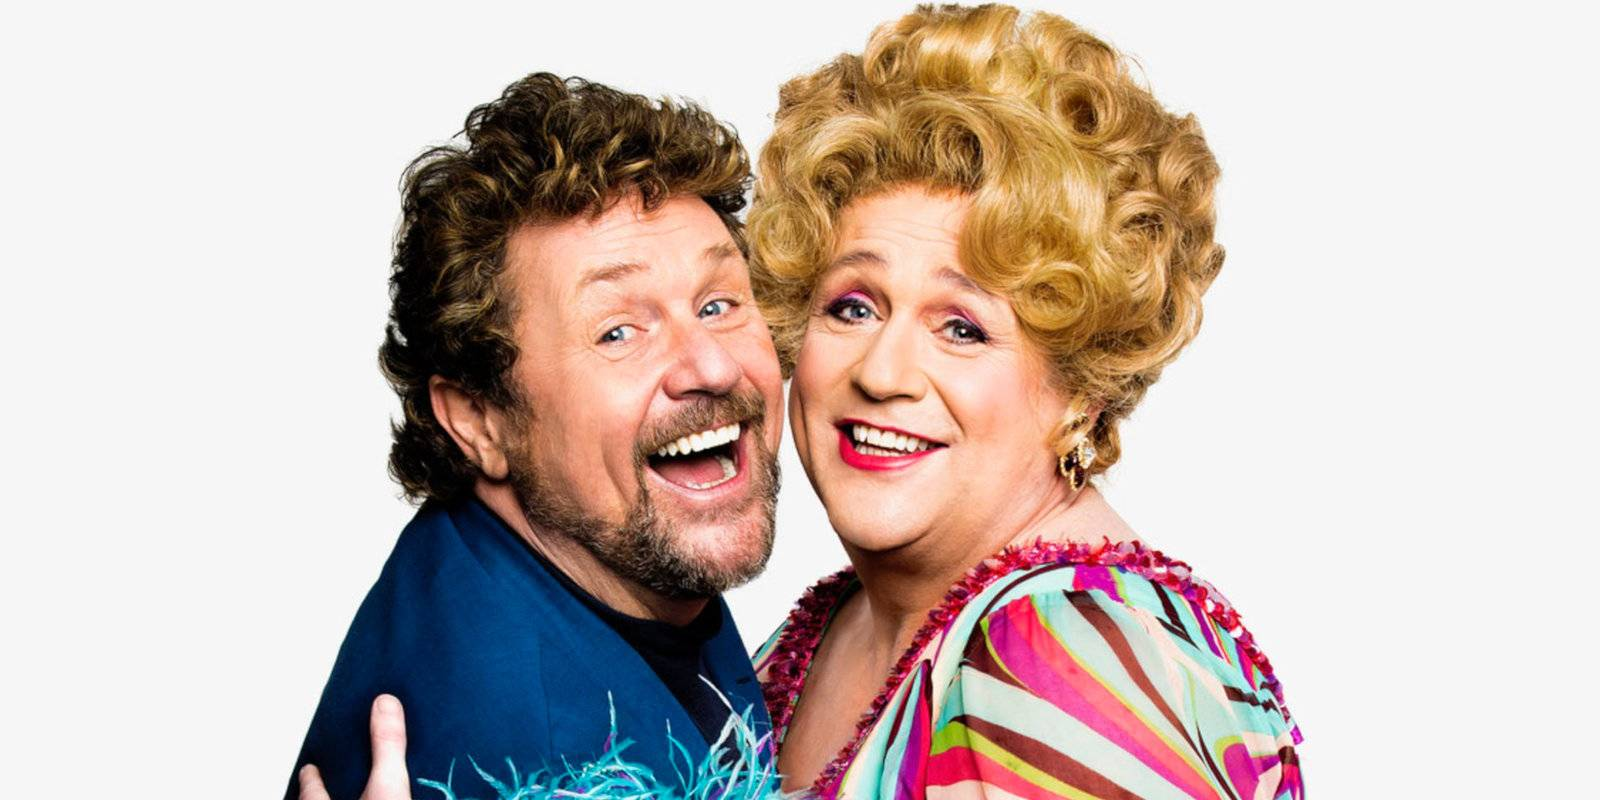 Hairspray is a fun, camp and feel-good musical - with Michael Ball cross-dressing!